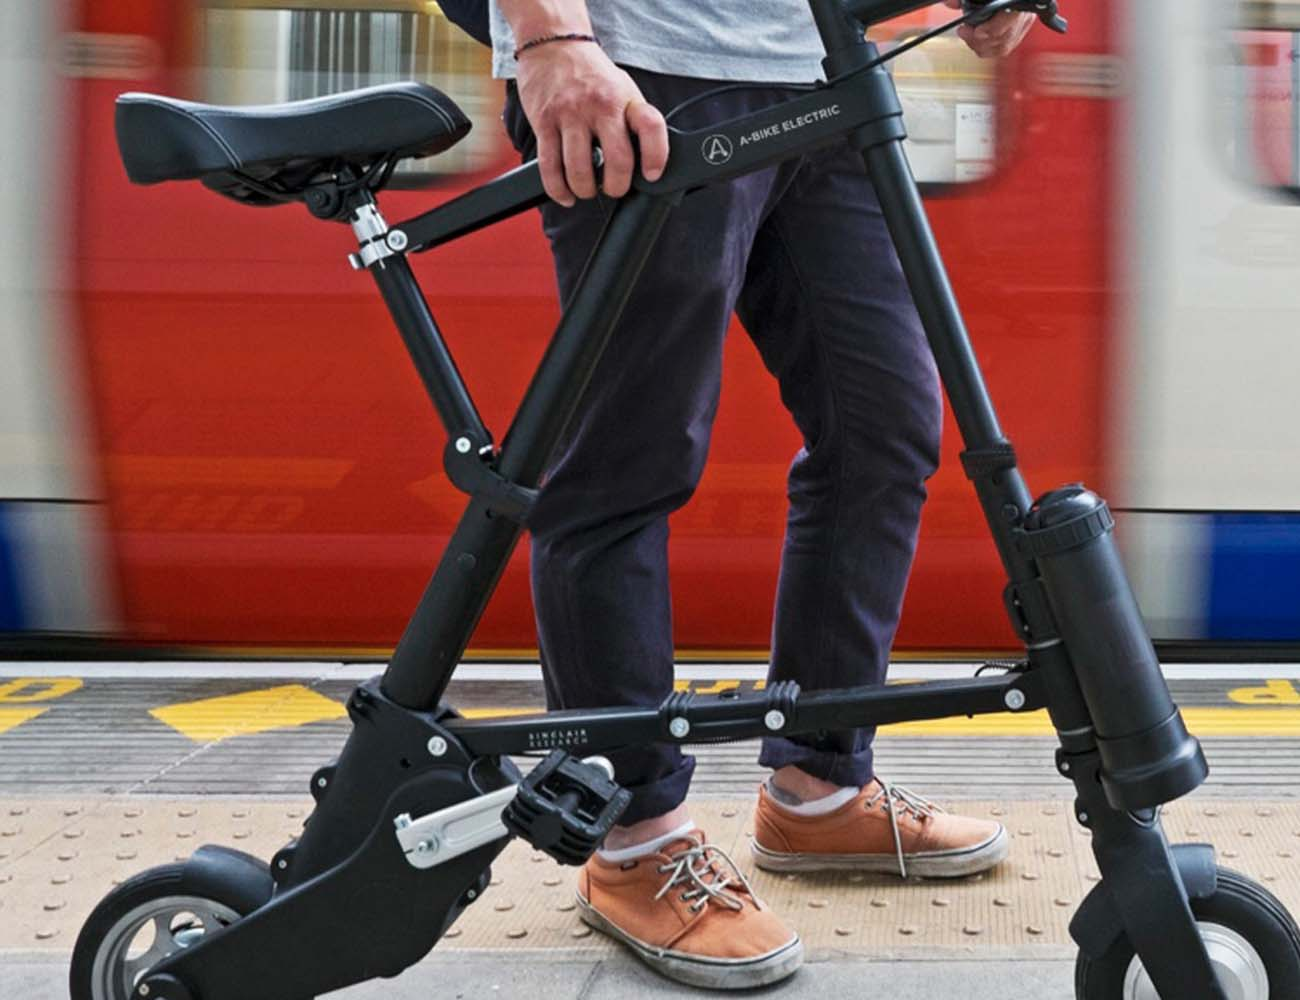 A-Bike Electric: The Lightest And Most Compact Electric Bike